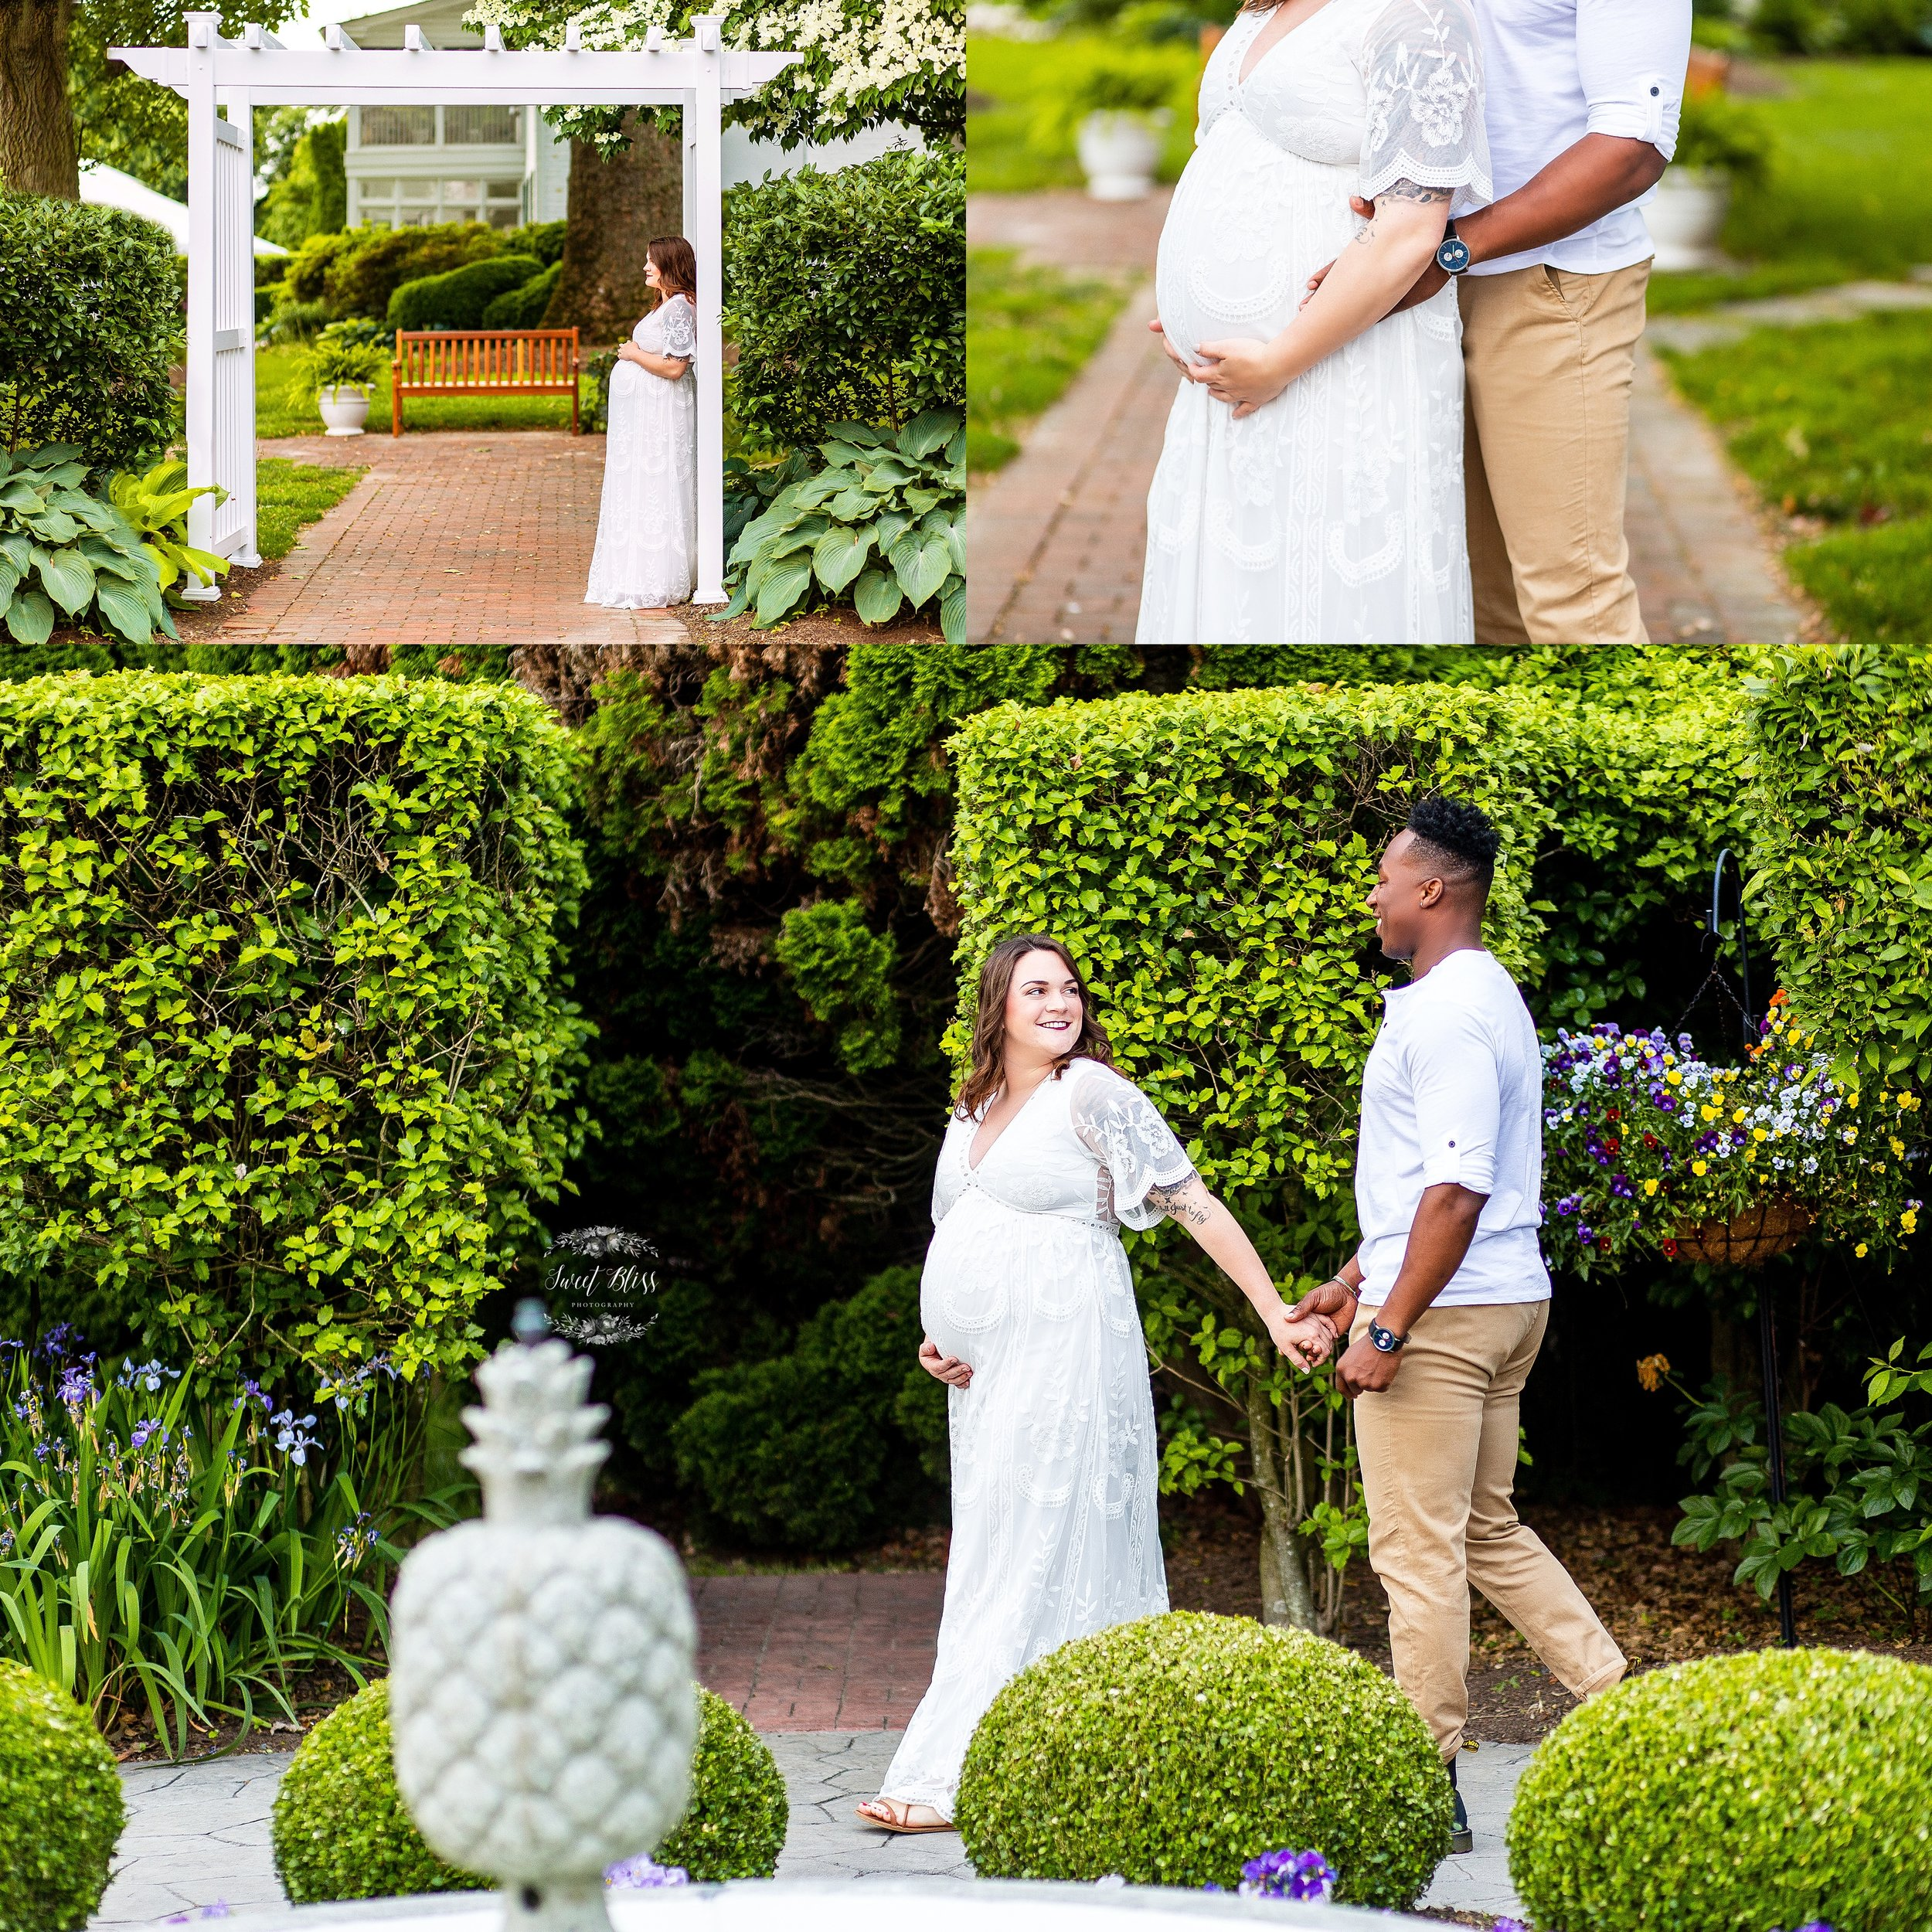 maternitymarylandPhotographer_newbornphoto_sweetblissphotography-1.jpg